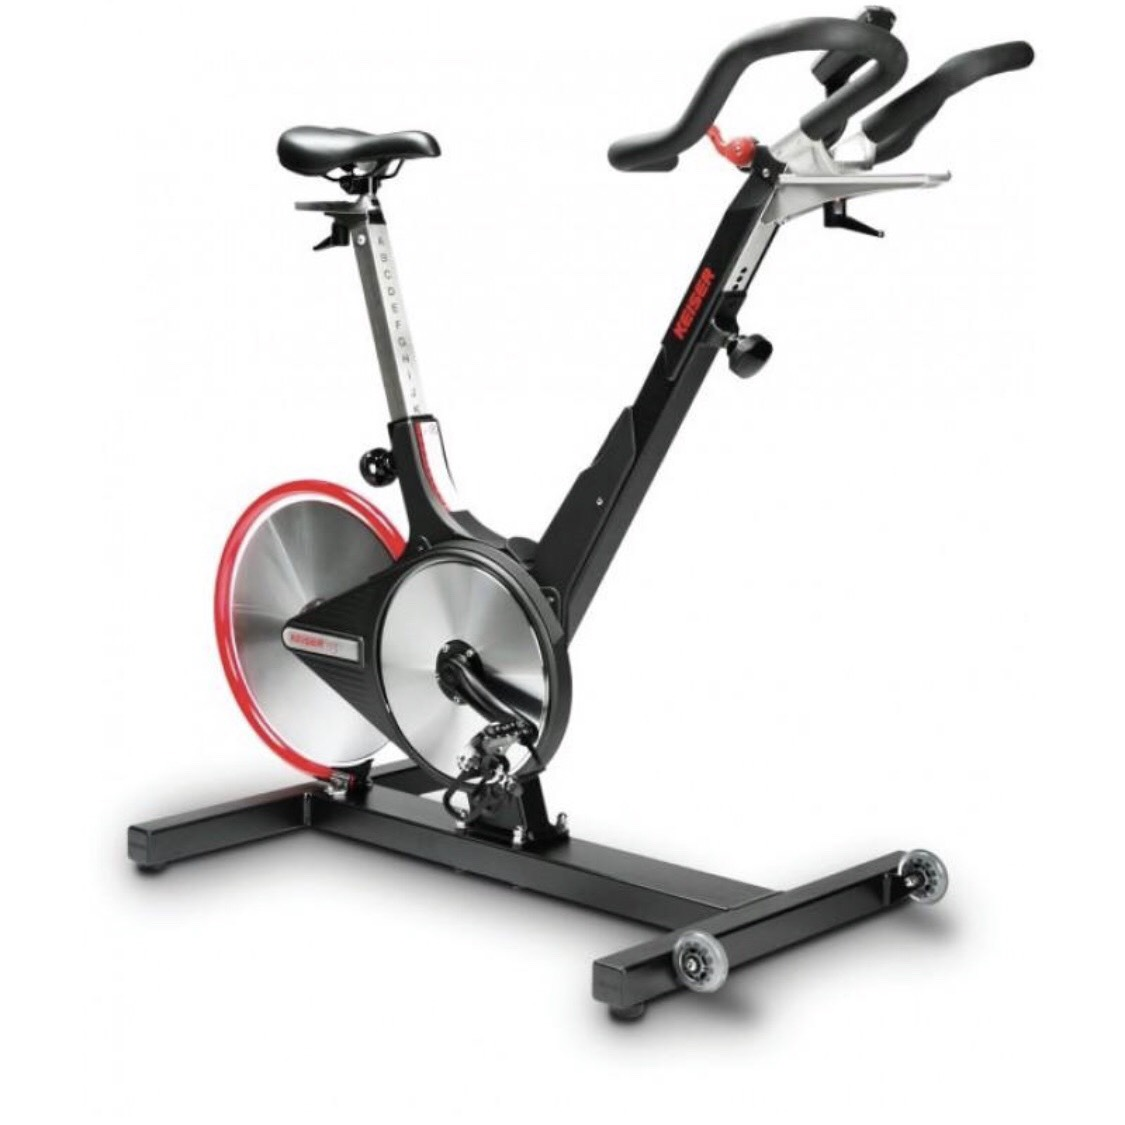 Keiser M3i Indoor Cycle (new and demo)